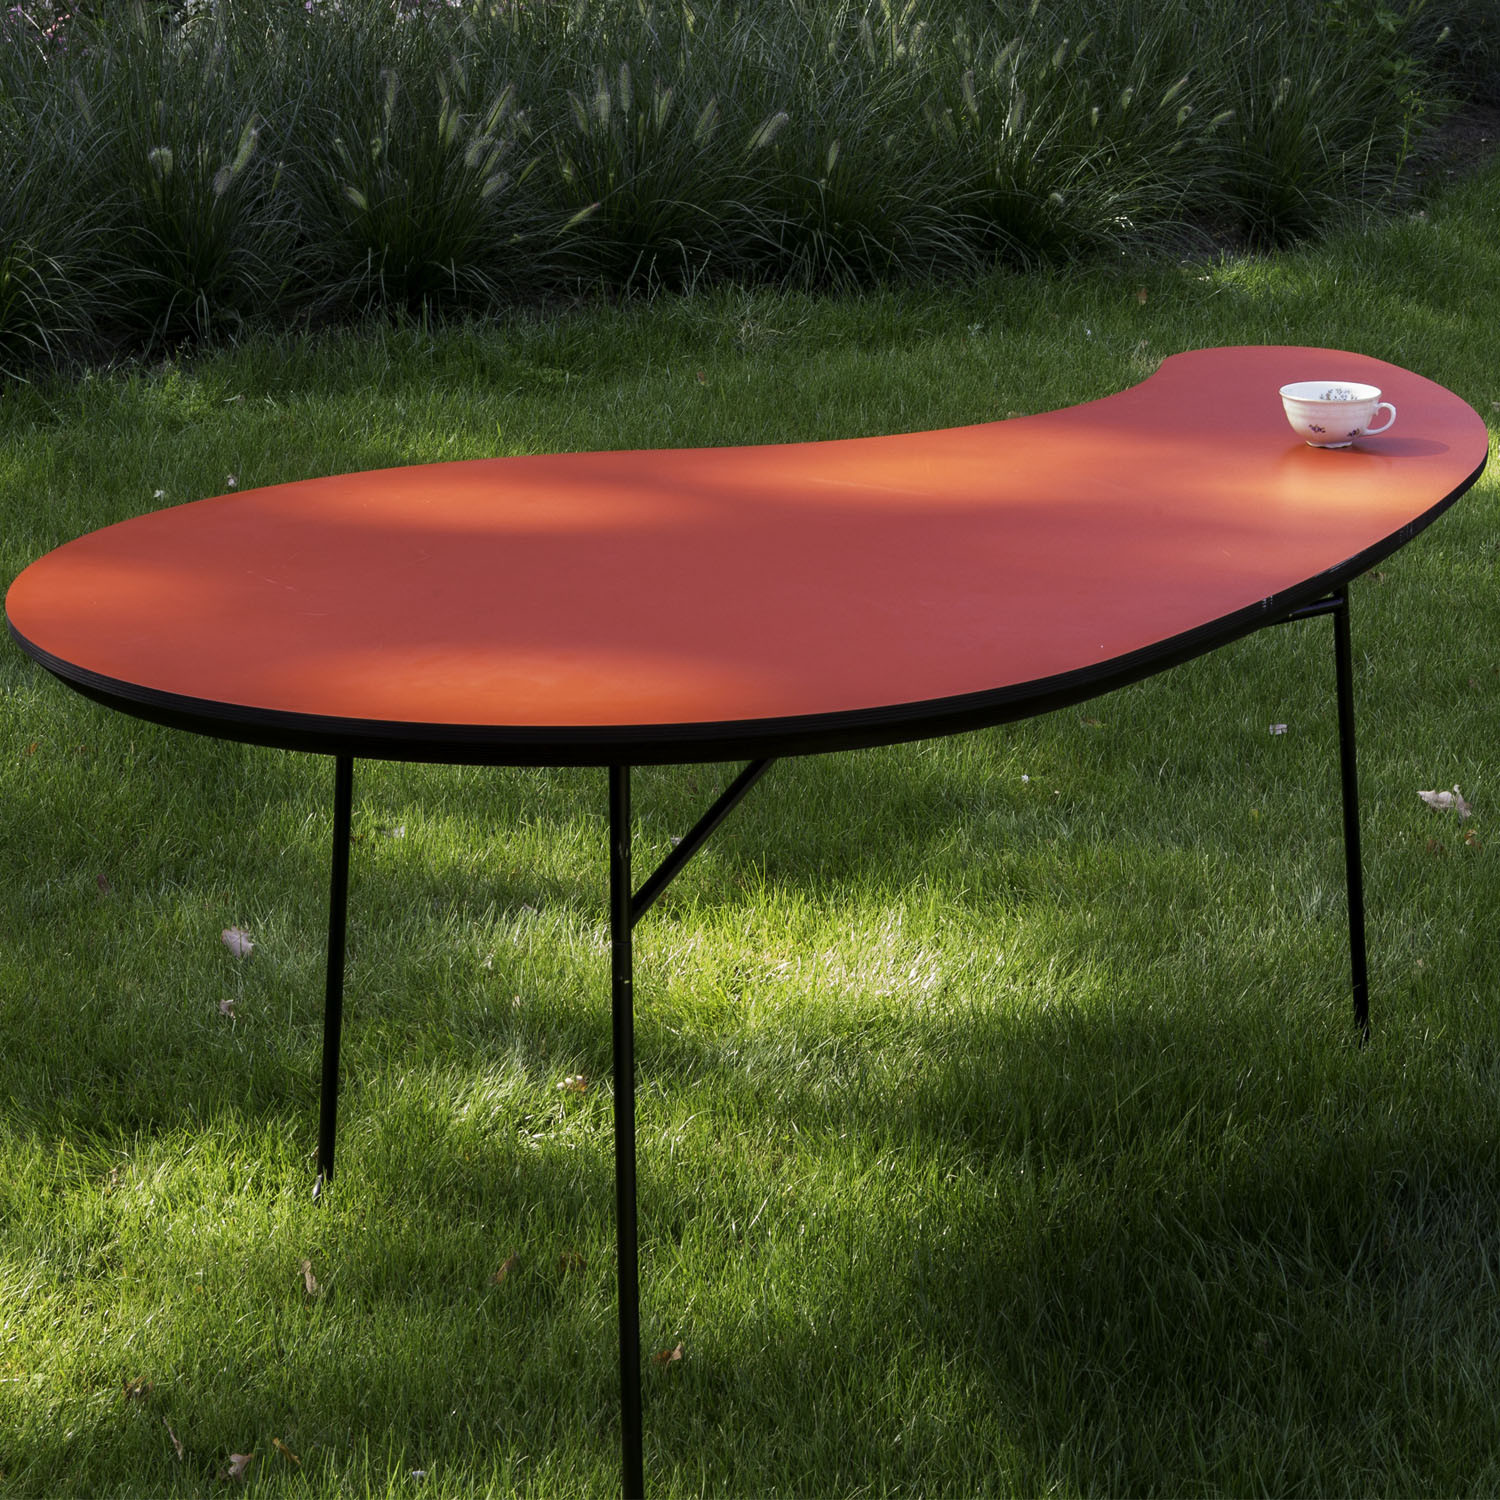 BuzziVirgule Outdoor Table from BuzziSpace